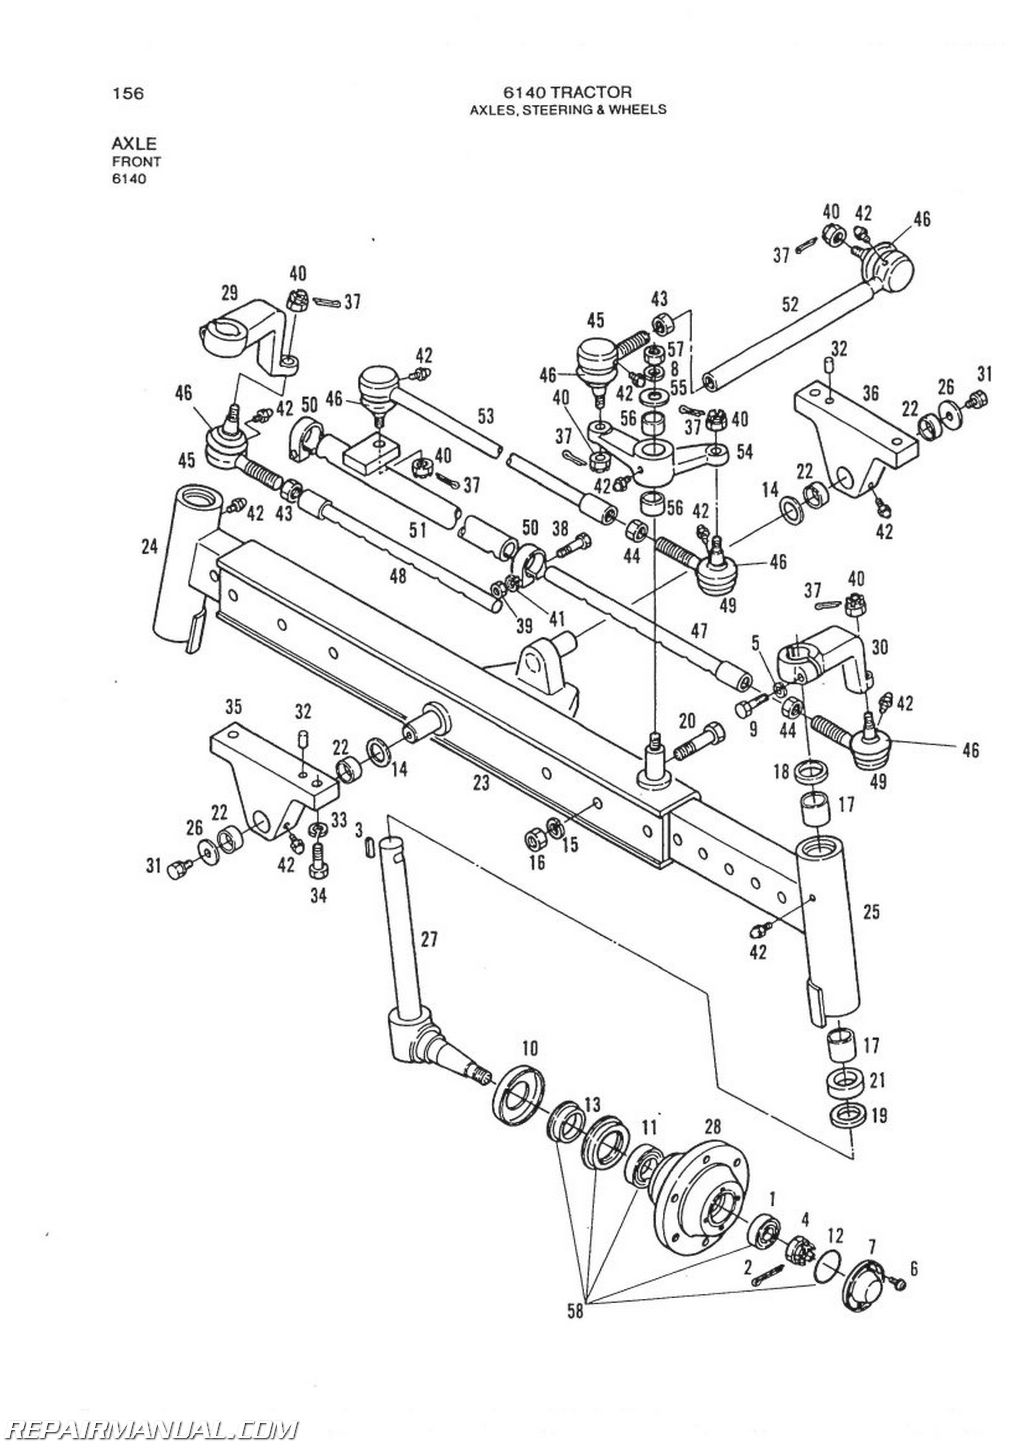 513re John Deere Model 318 Tractor Stopped Dead Its Tracks furthermore Kioti Tractor Wiring Schematics moreover Scotts Riding Lawn Mower Wiring Diagram likewise John Deere Farm Discs together with John Deere X360. on john deere 520 lawn mower